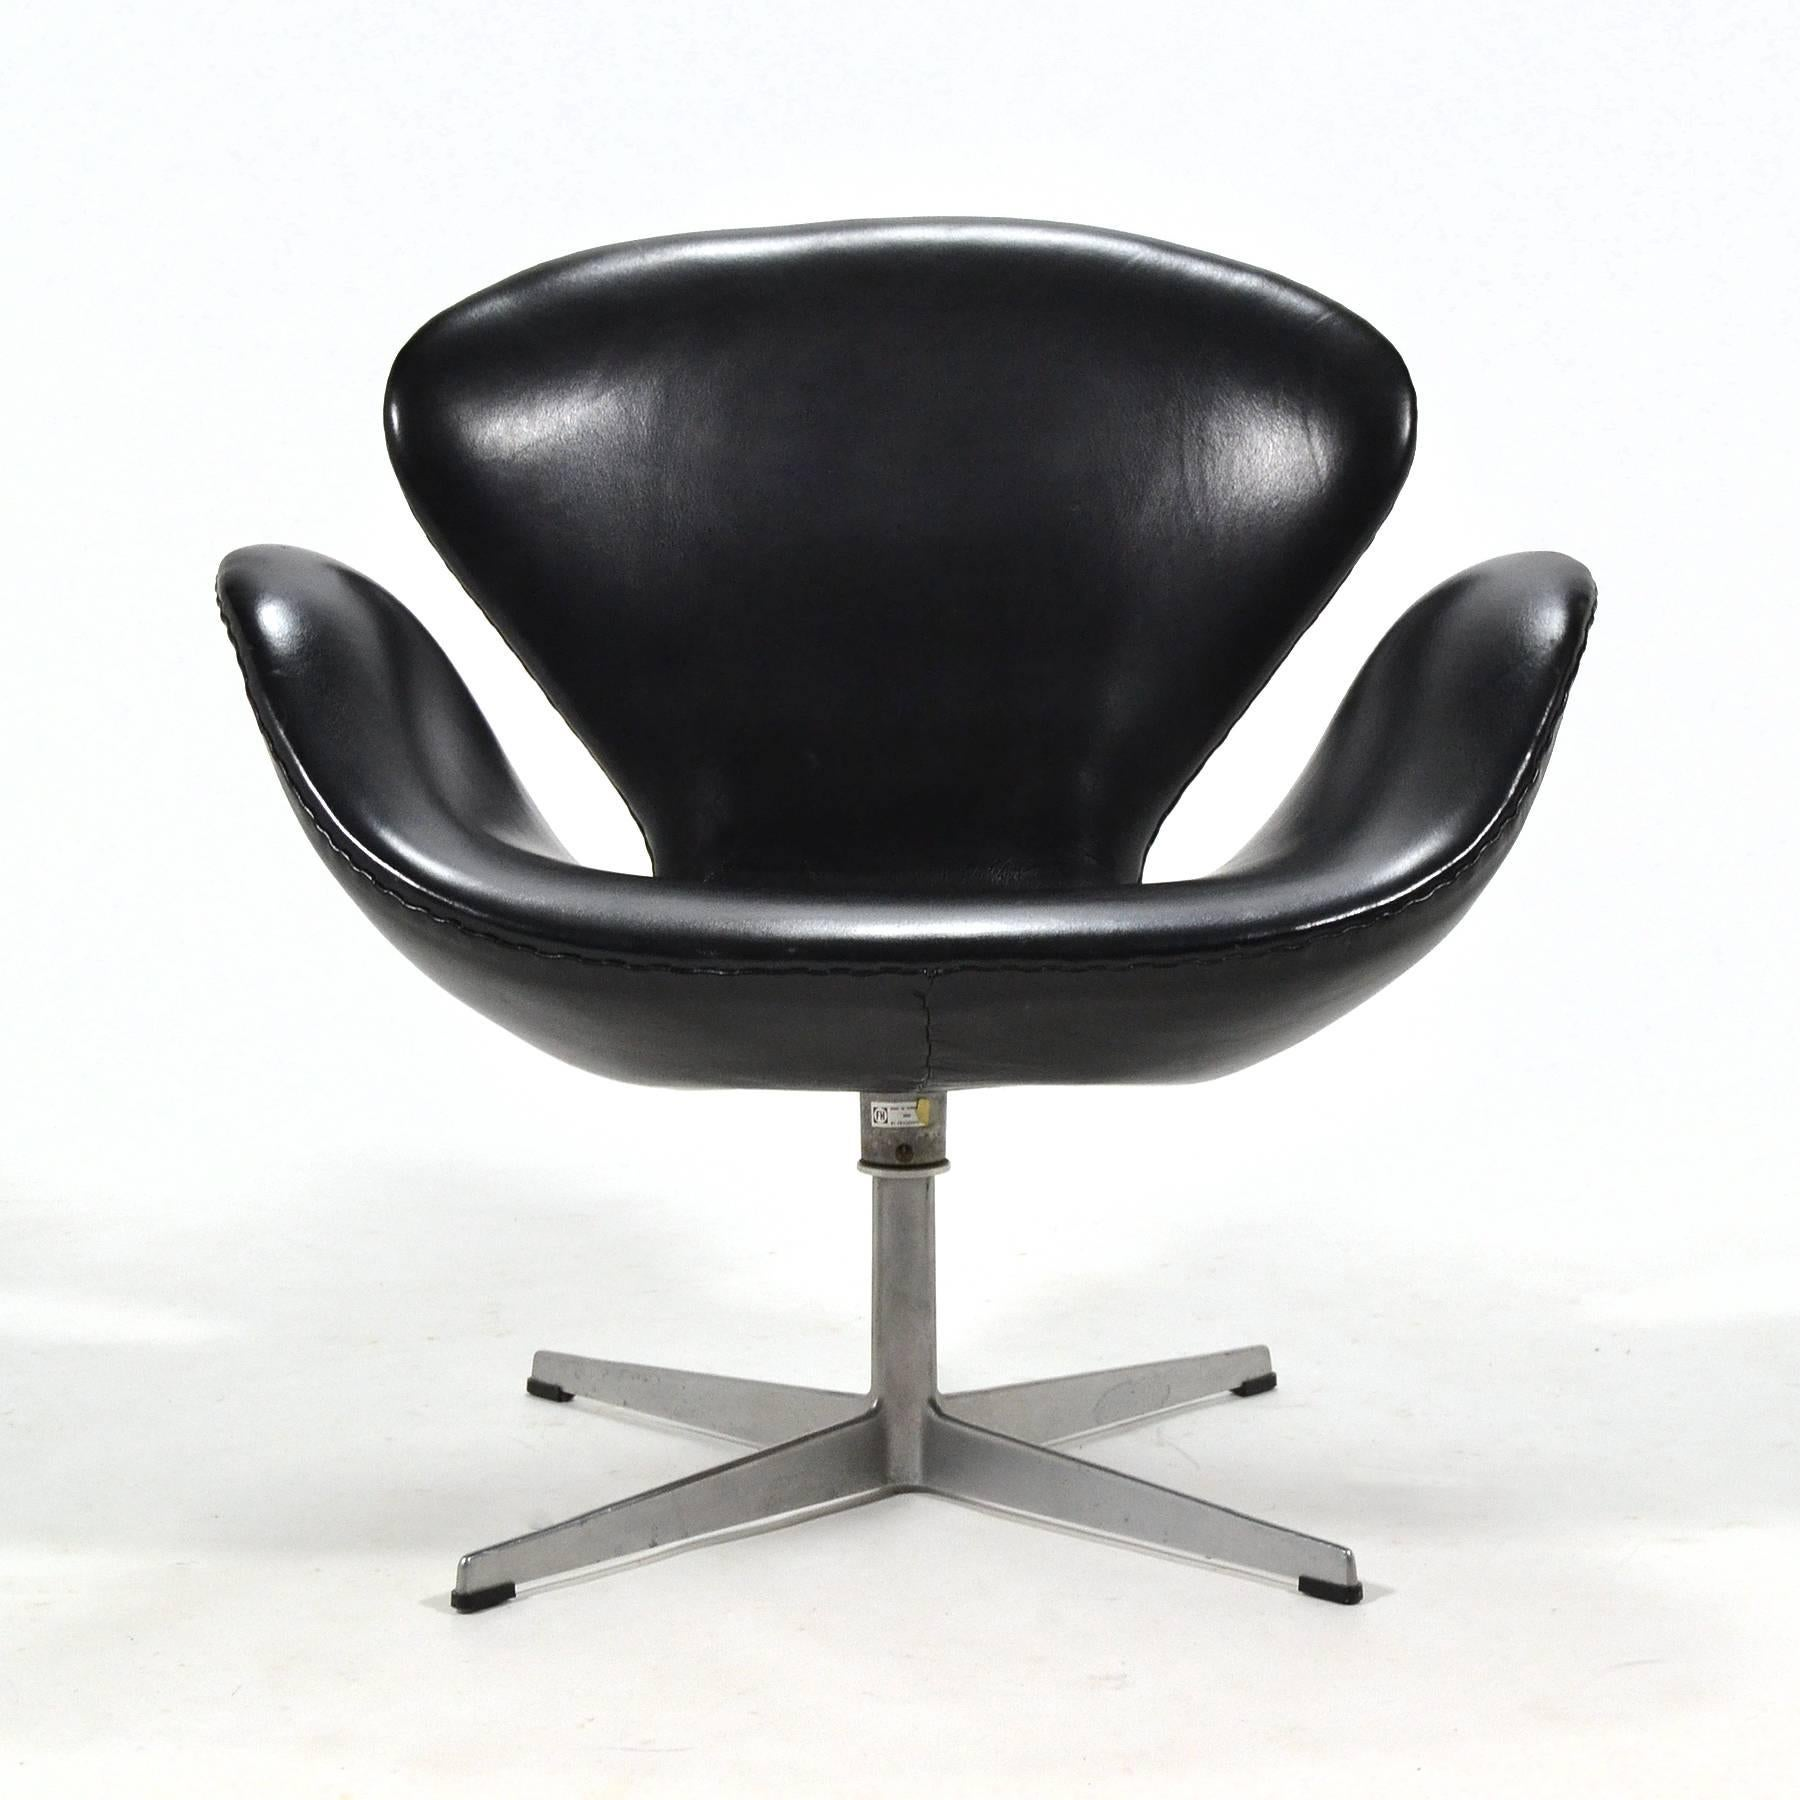 Arne Jacobsen Black Leather Swan Chair By Fritz Hansen For Sale At 1stdibs